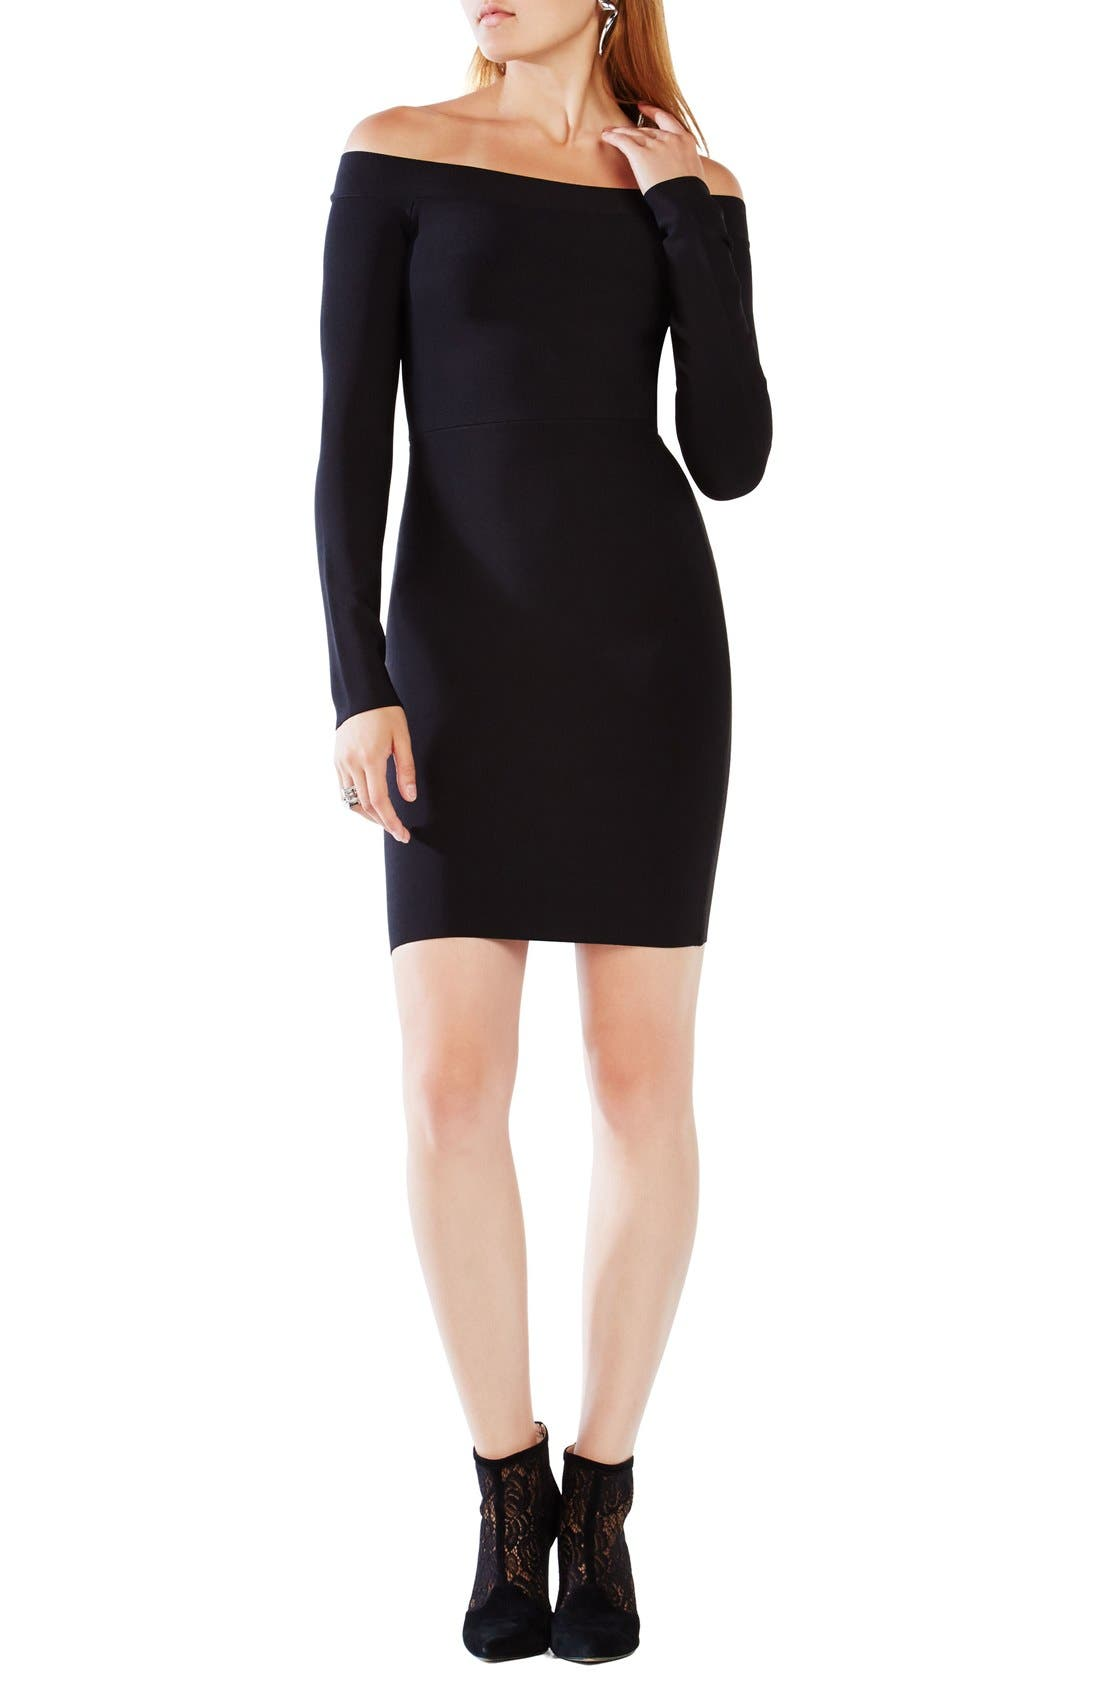 Alternate Image 1 Selected - BCBGMAXAZRIA 'Annabeth' Off the Shoulder Body-Con Dress